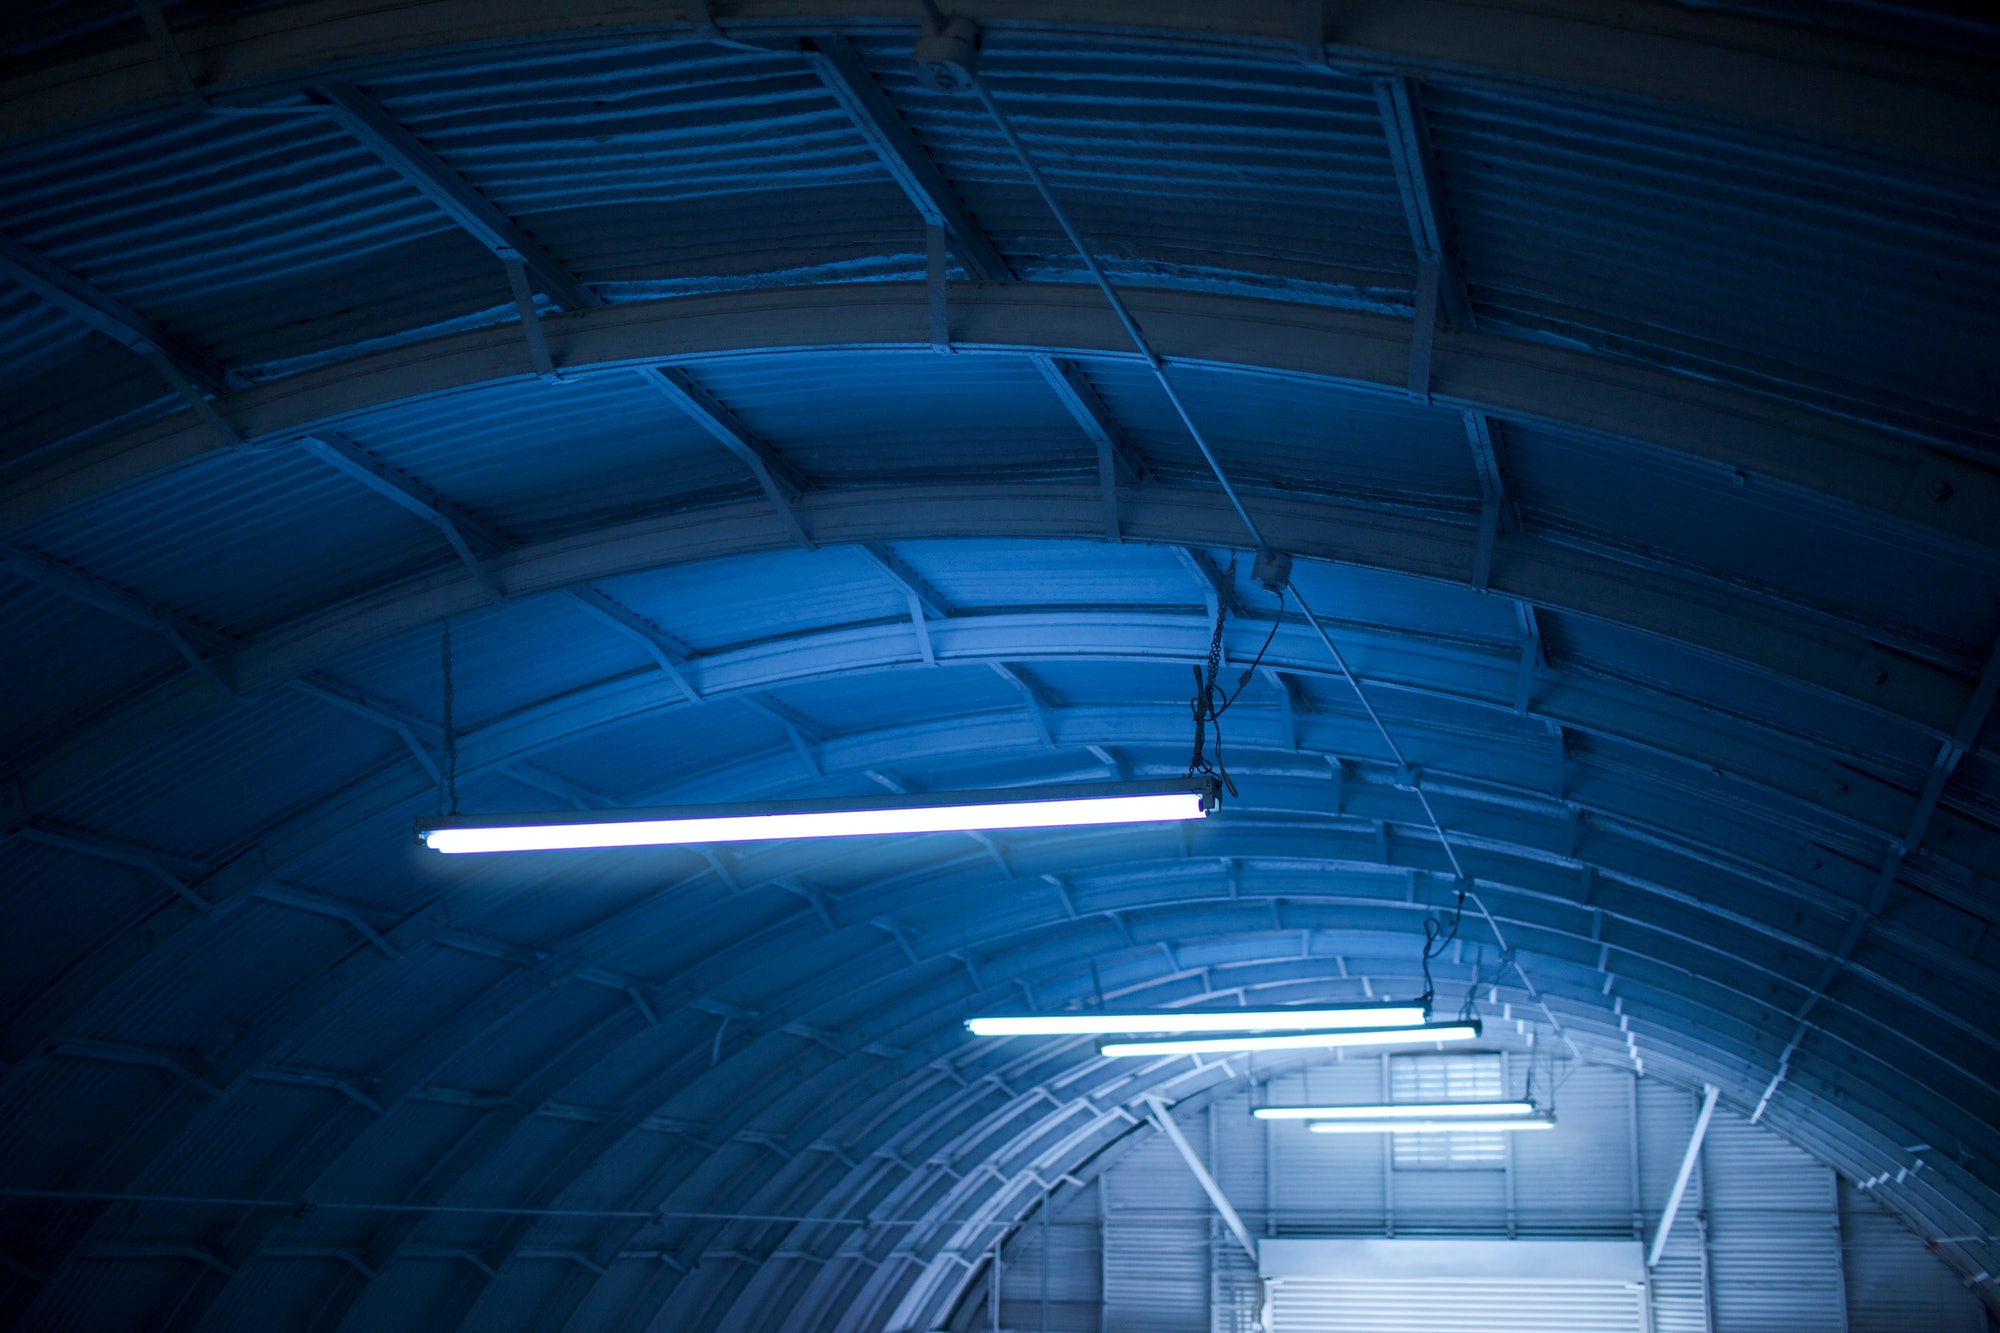 Mysterious lights inside what looks like a hangar.